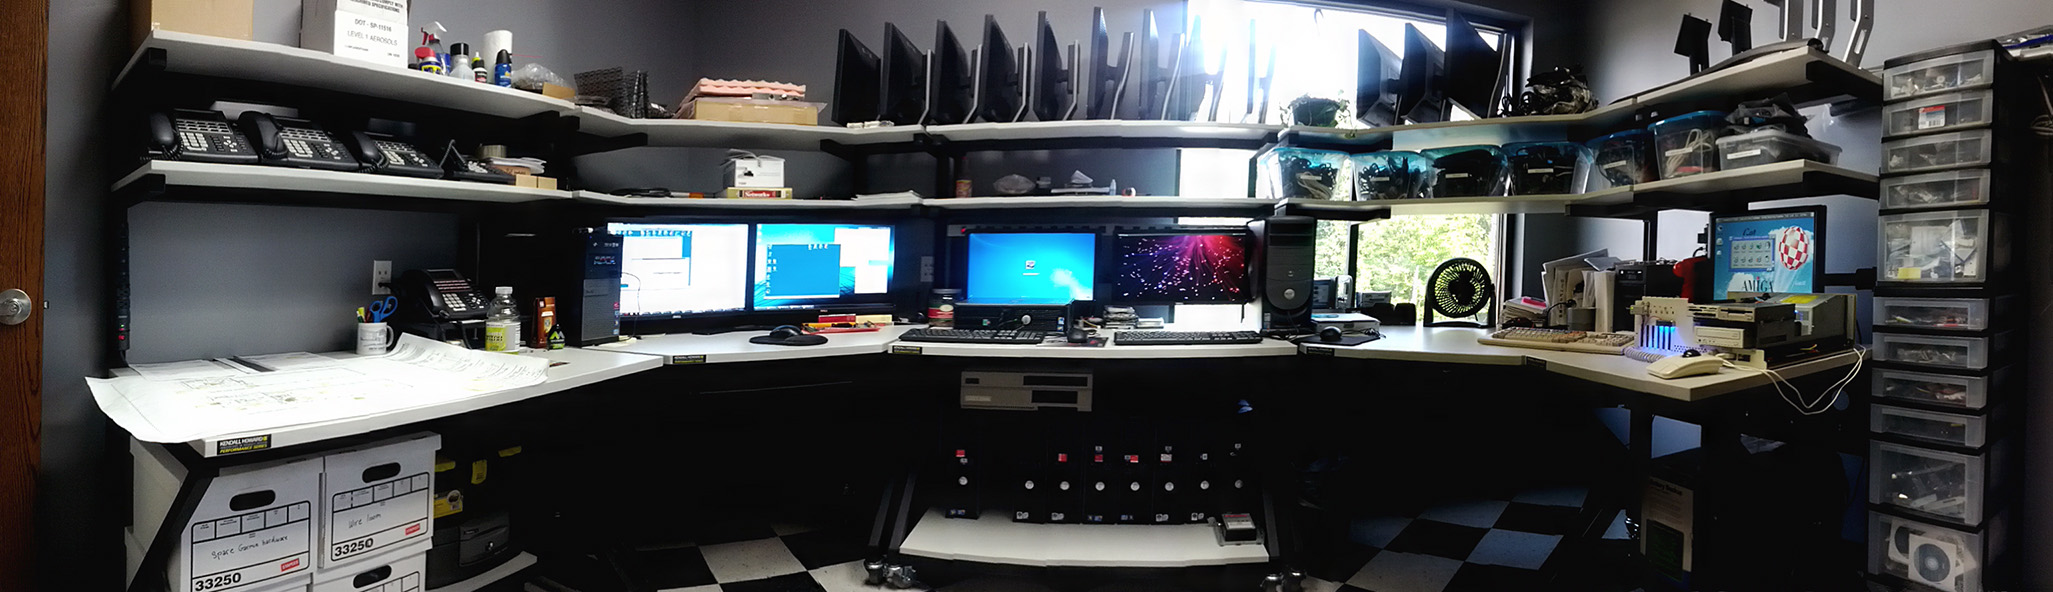 My office - with A2000 and other Amiga parts :)